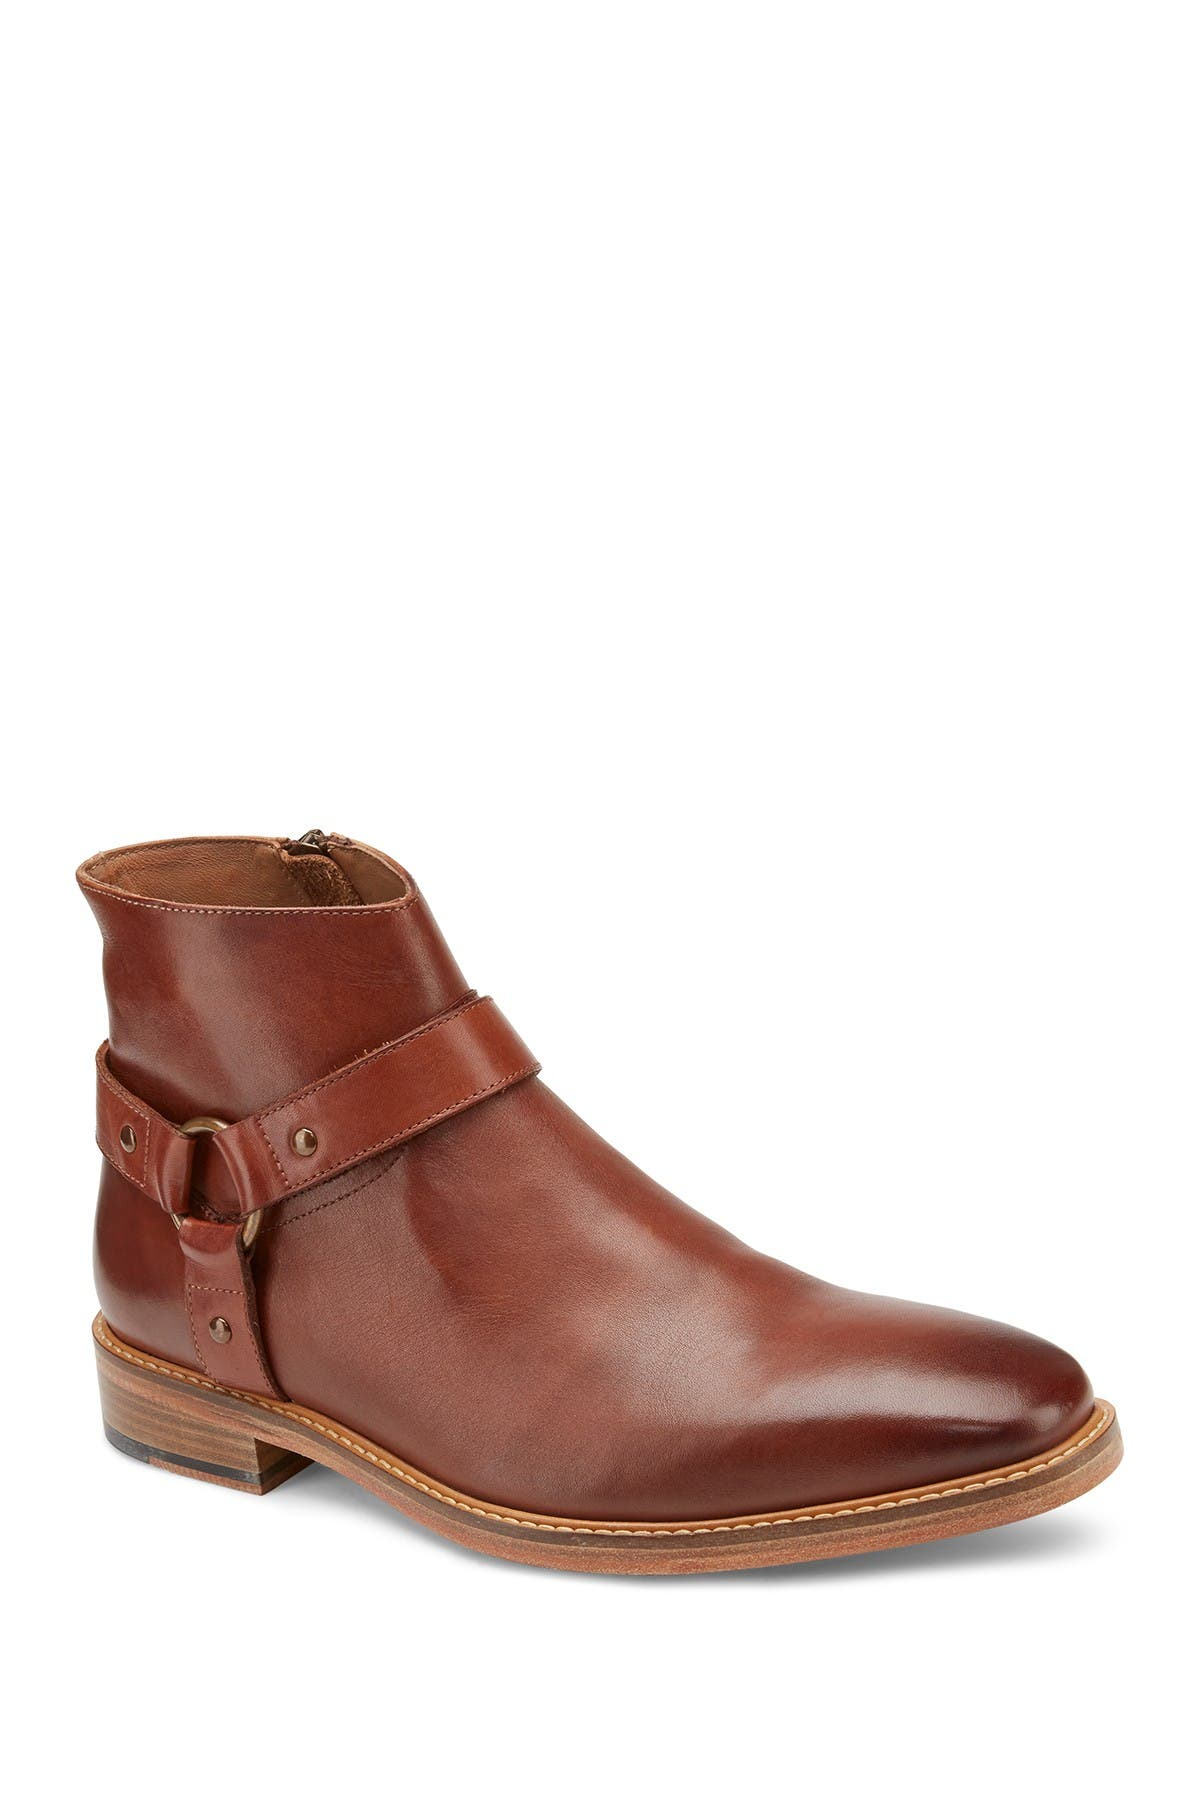 Image of Vintage Foundry Wyatt Harness Chelsea Boot